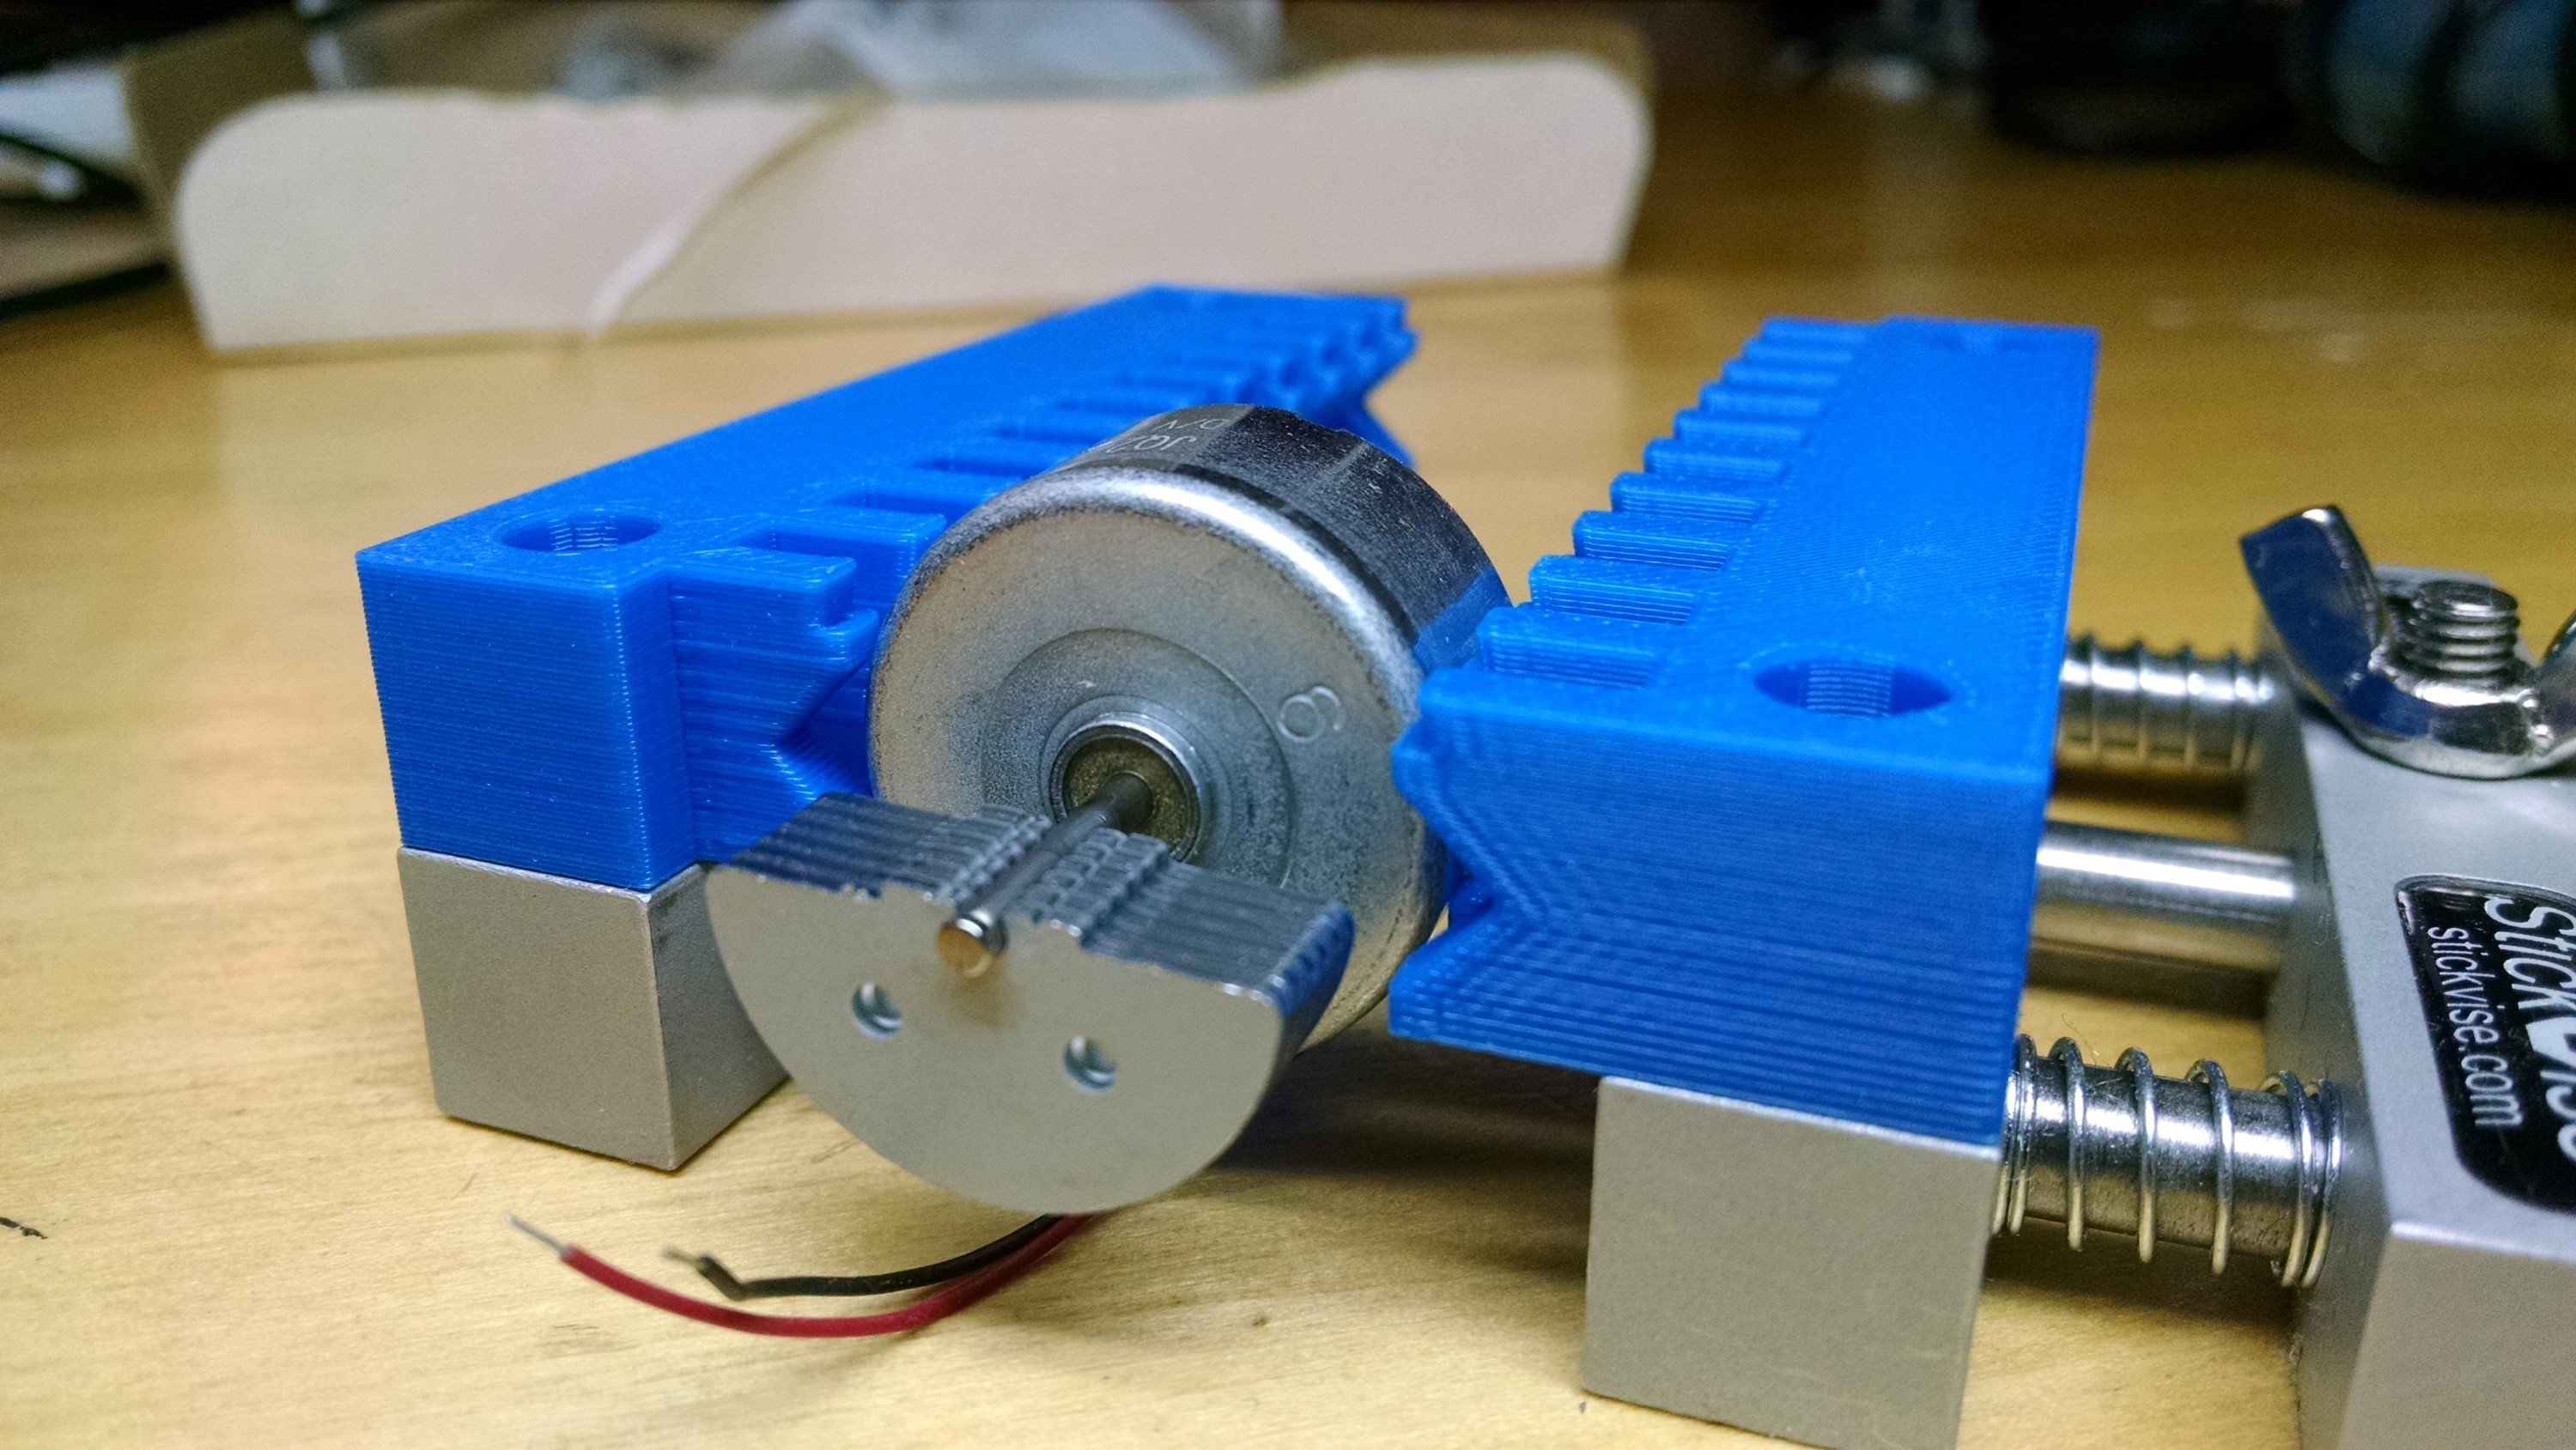 Stickvise Hacks For The Low Profile Pcb Vise Picture Of Make A 3d Printed Circuit Board That Works Interlocking V